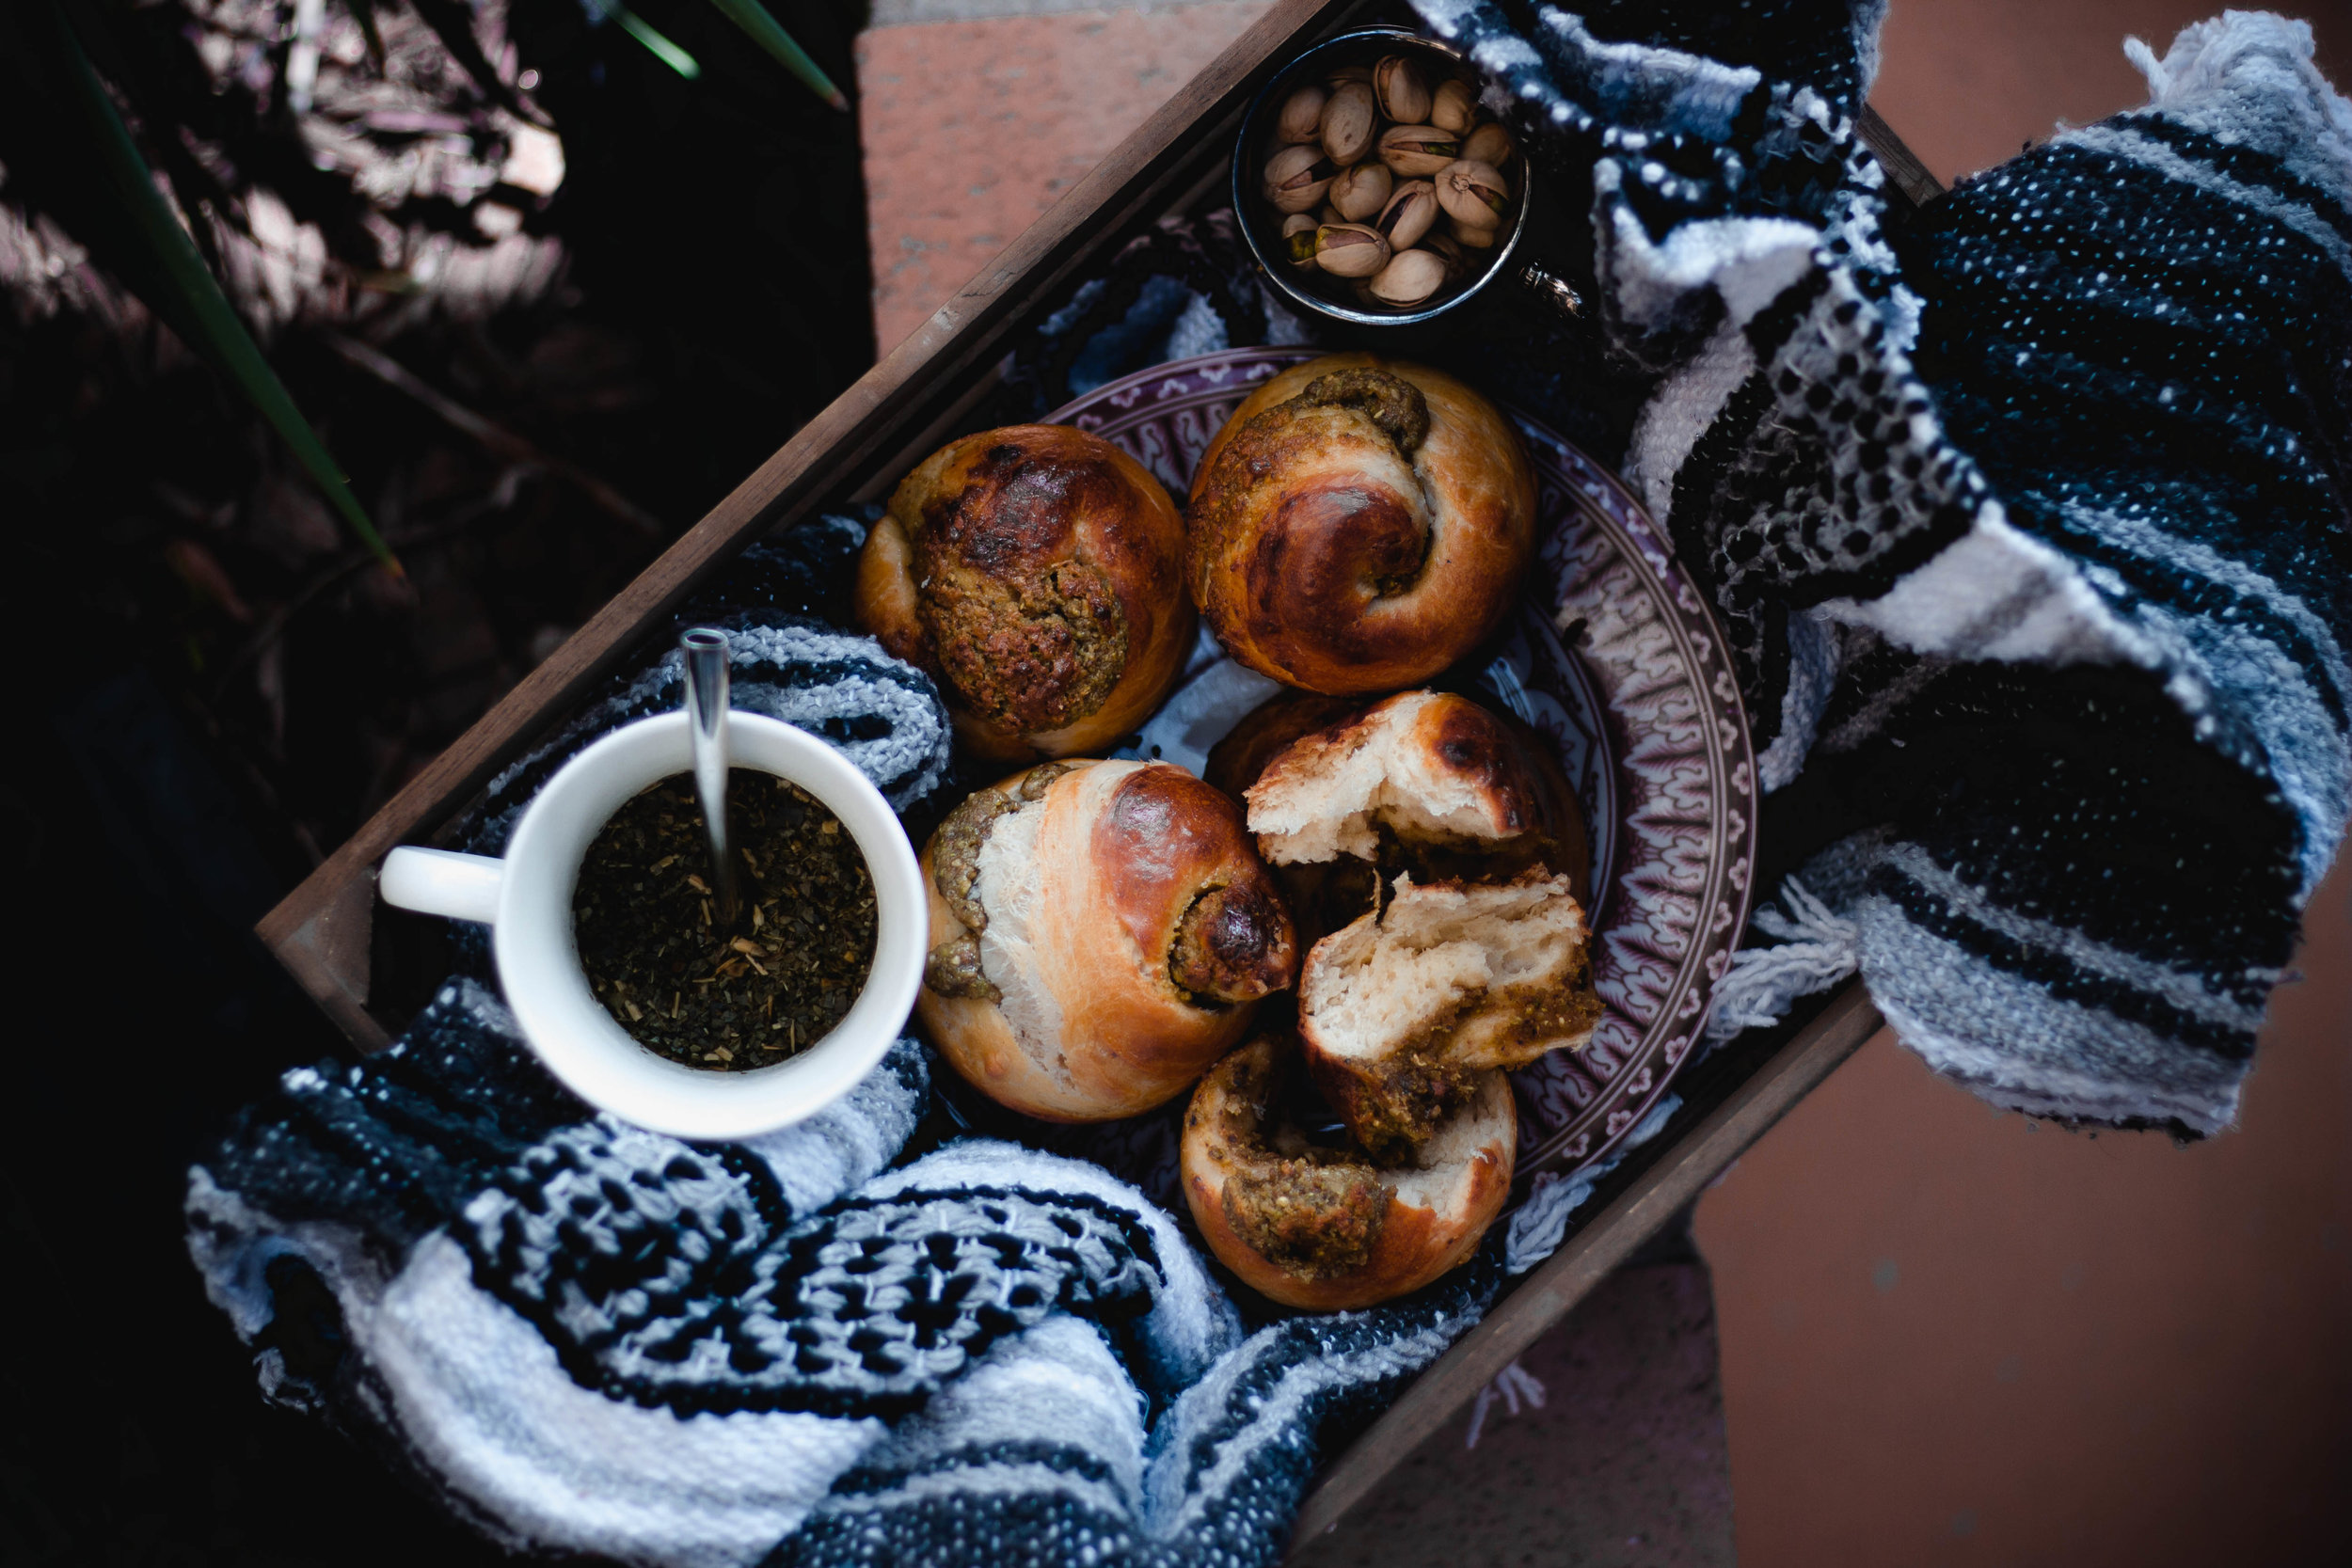 How to make a fluffy brioche, plus a pistachio filling | from scratch, mostly